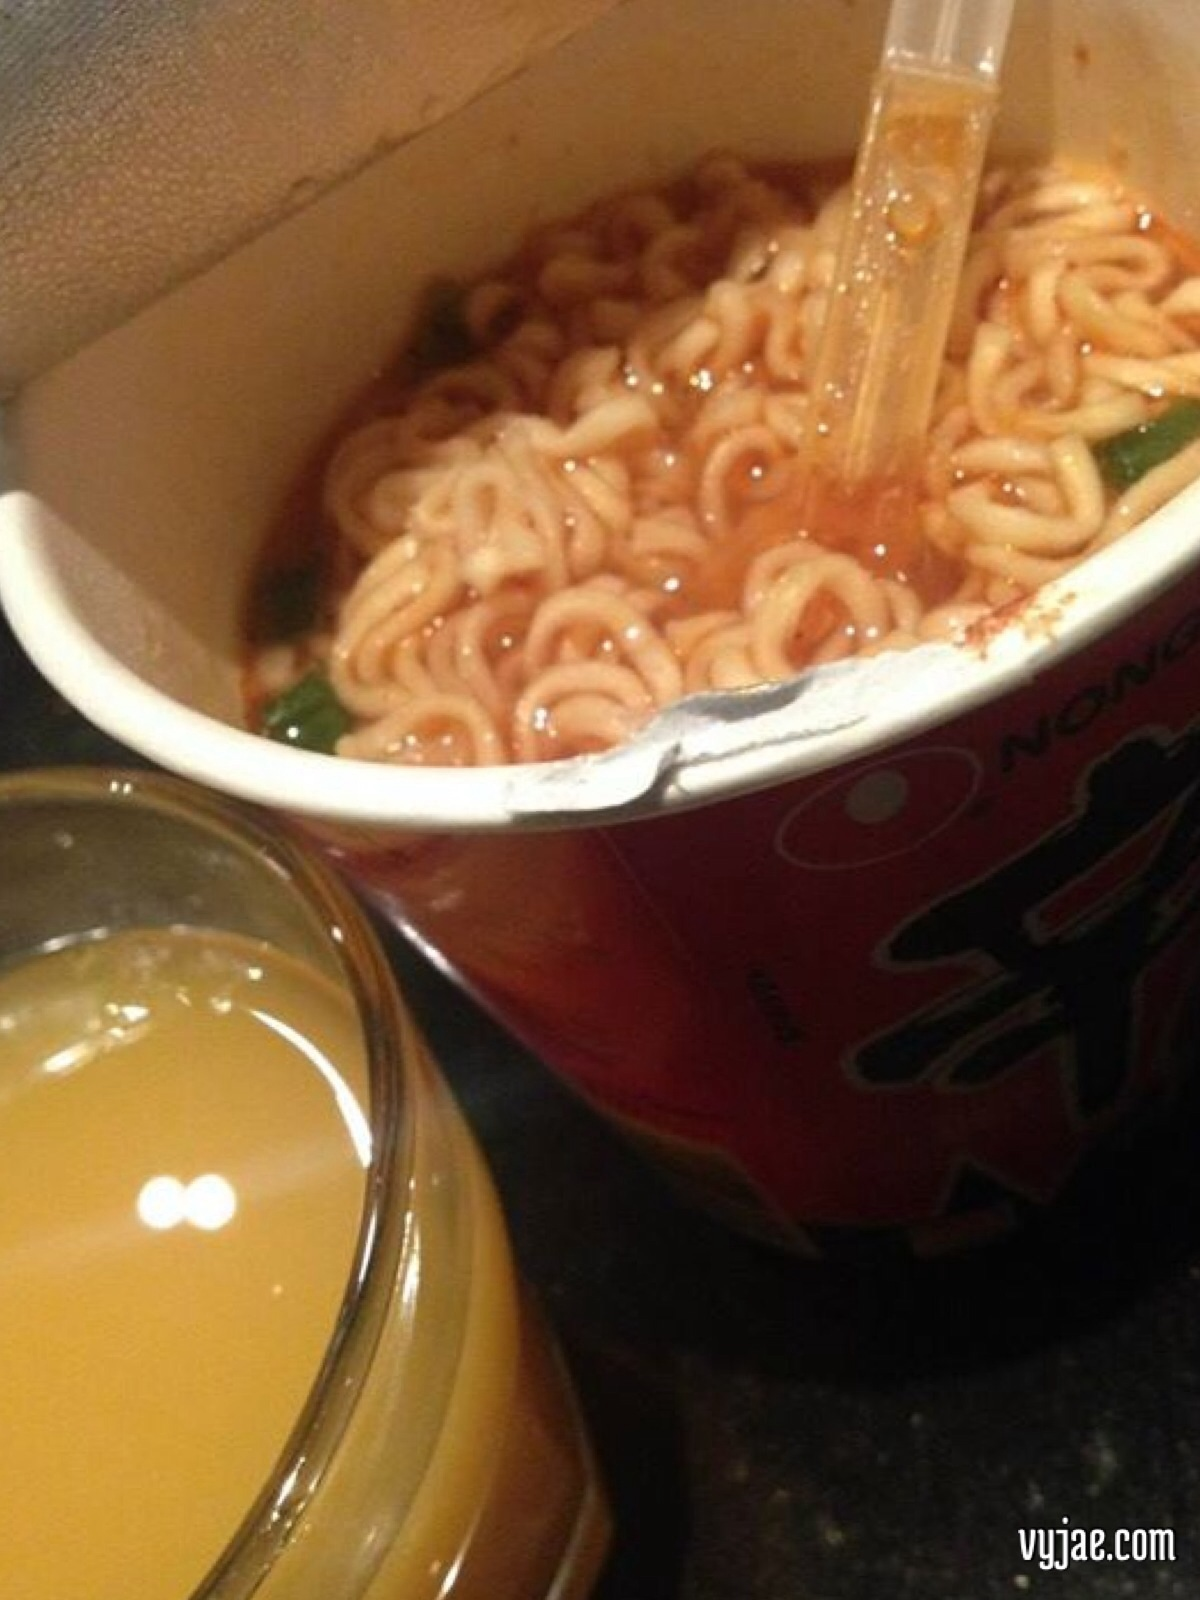 Noodle soup and fruit juice for my baby's night cap